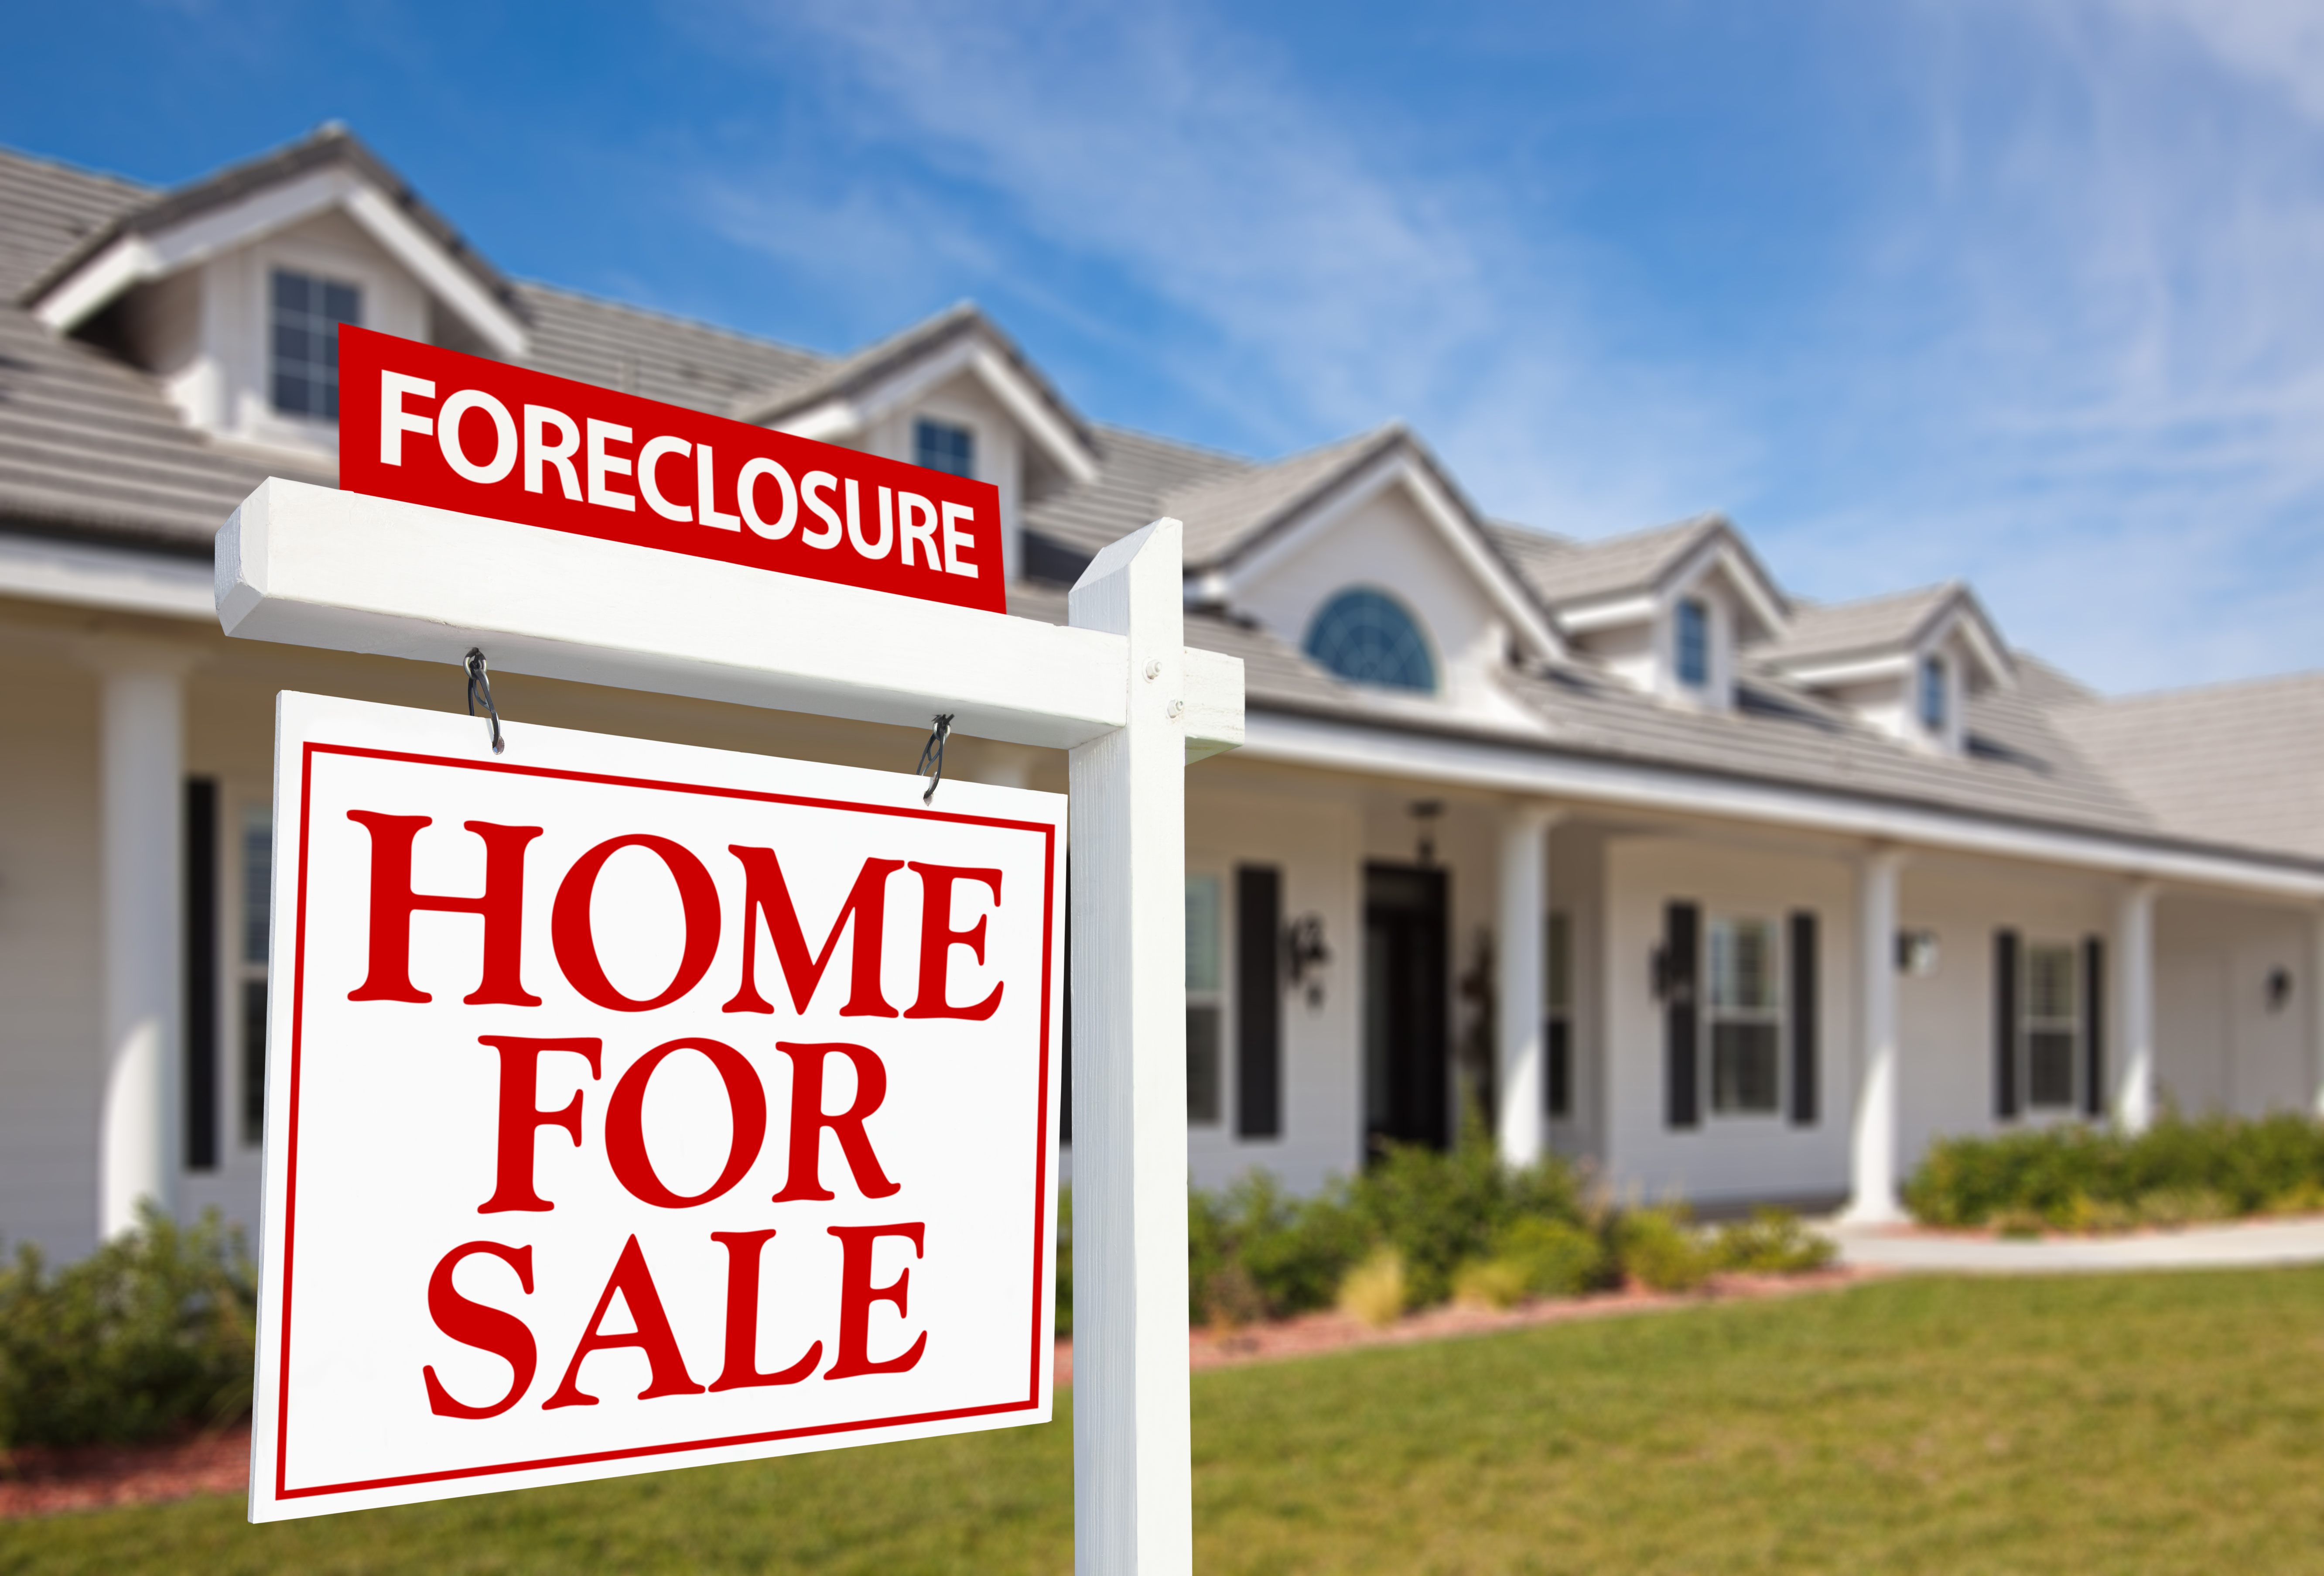 how long does a house foreclosure stay on your credit record